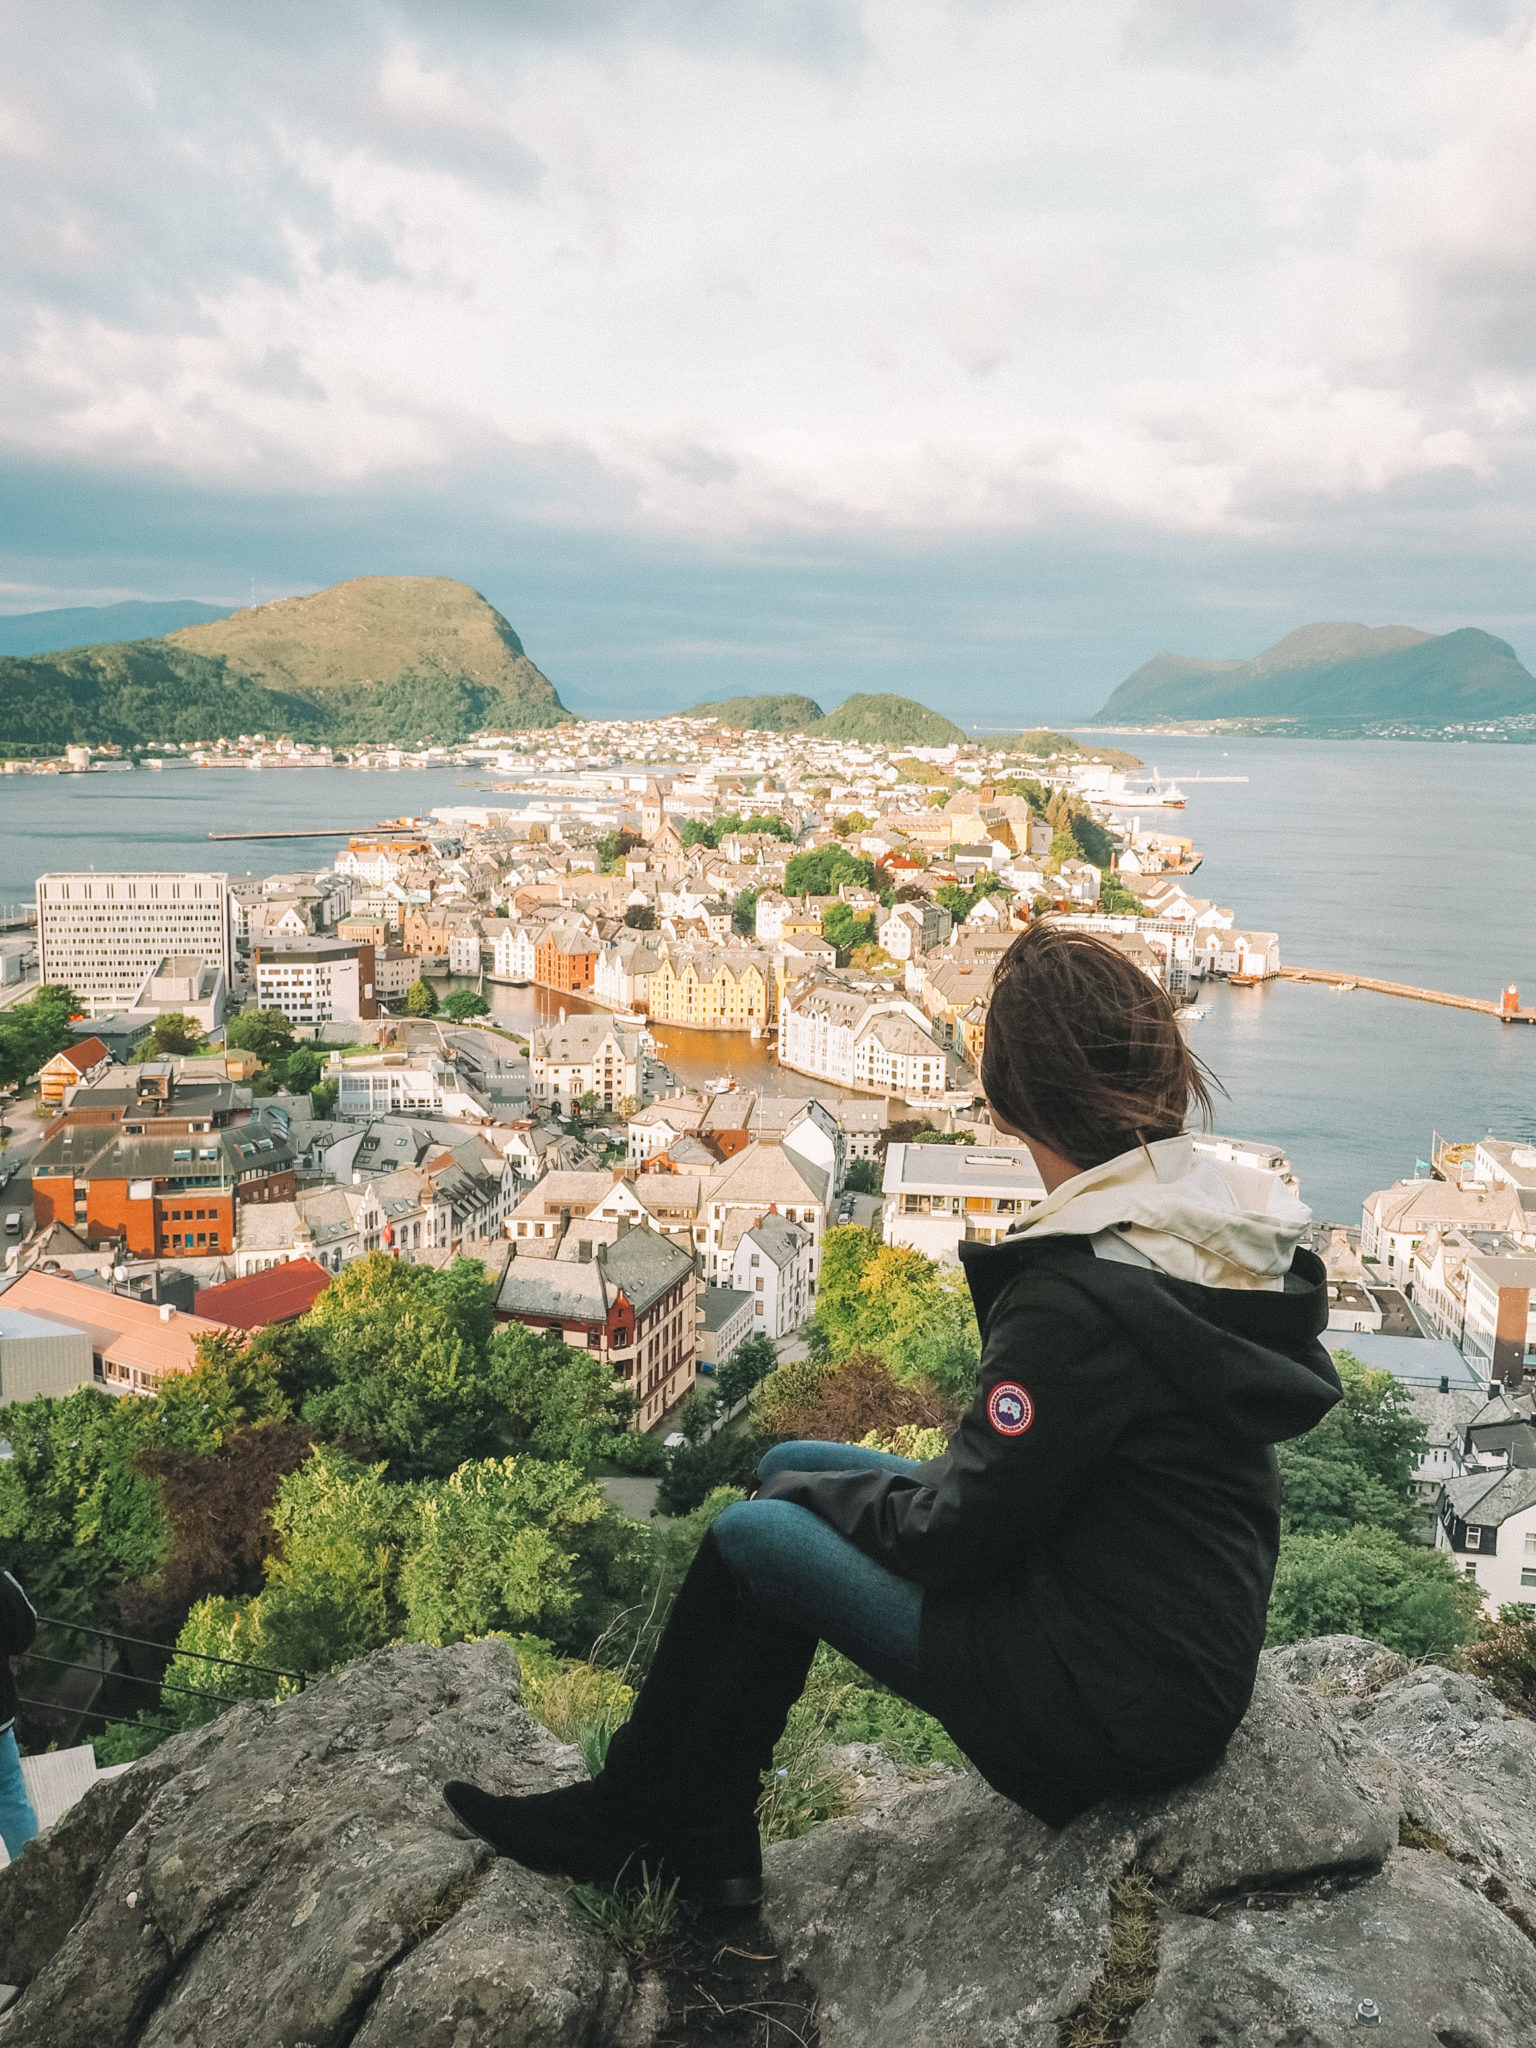 The Best Advice For Your First Time Traveling Solo